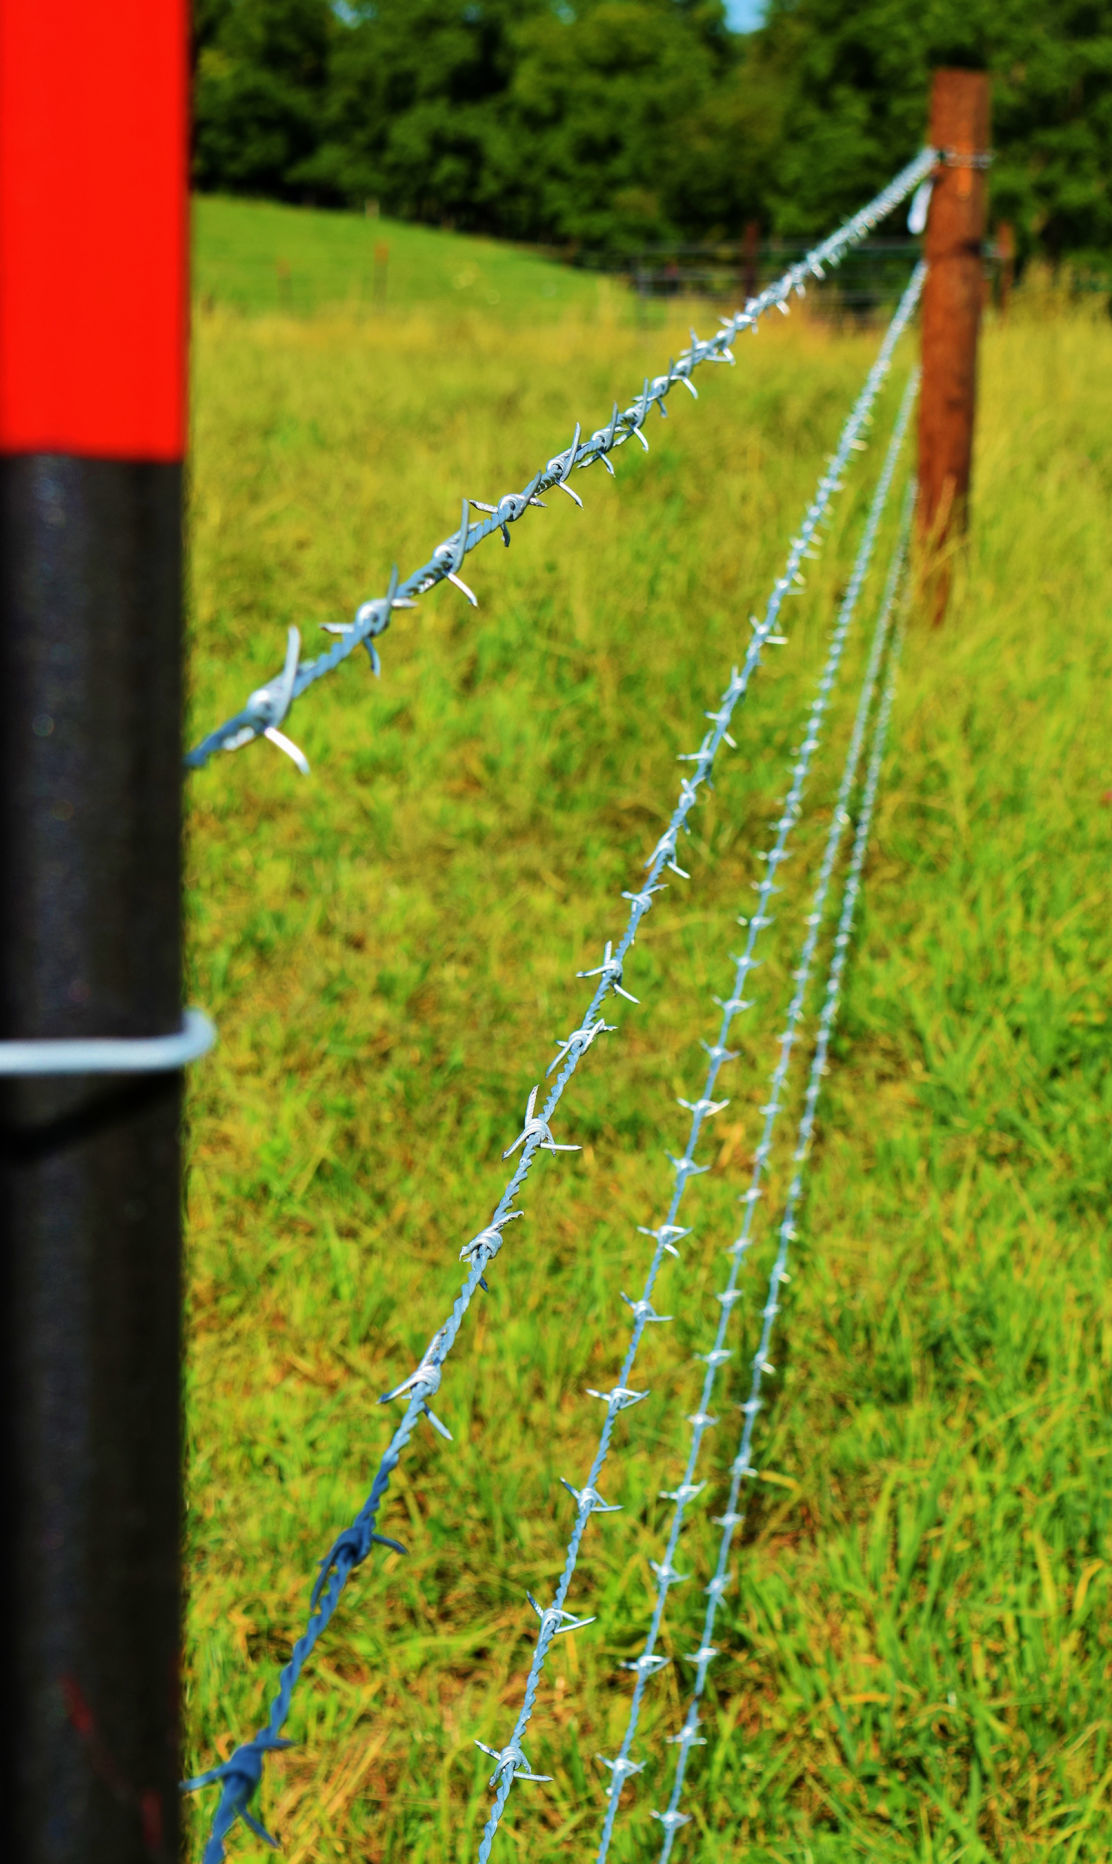 Five-strand barbed-wire fencing and posts